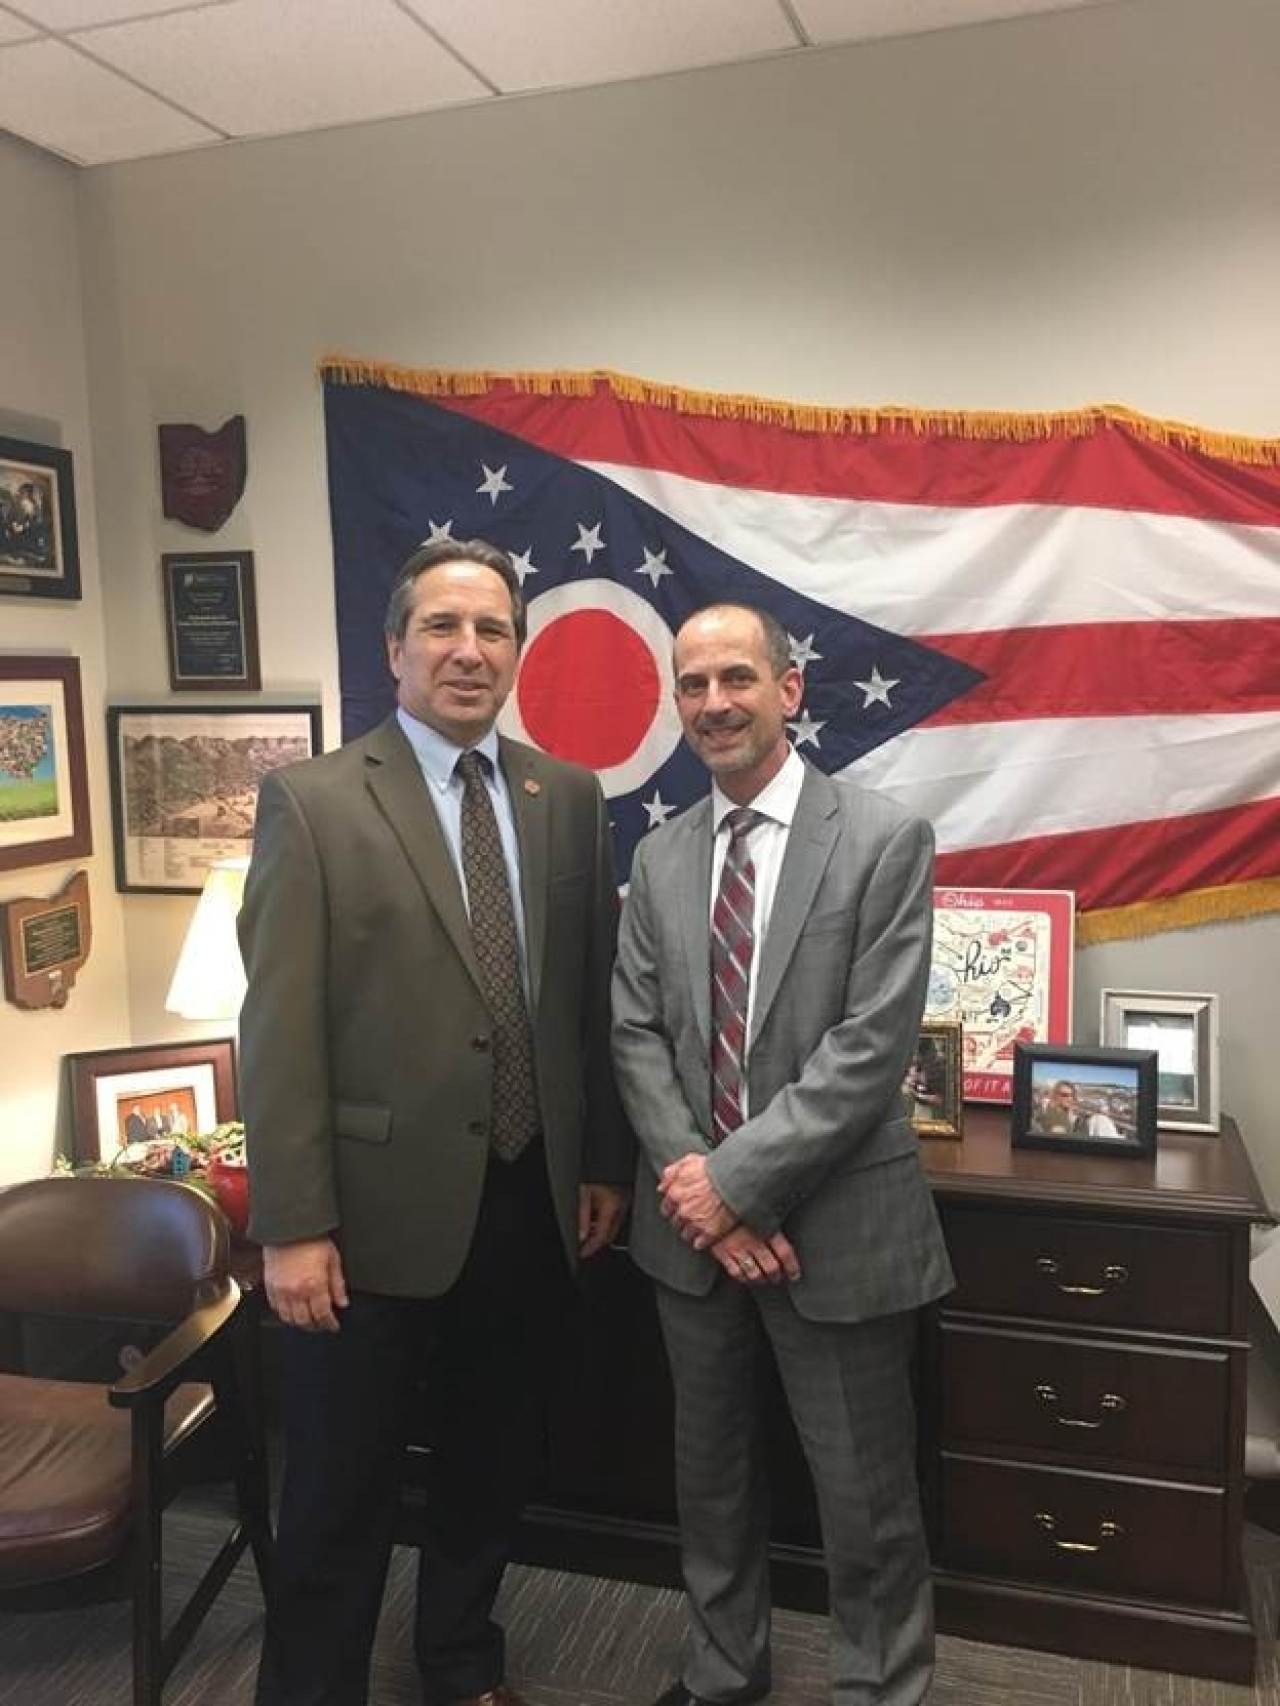 Cera welcomes Judge Yoss for day at the Ohio Statehouse